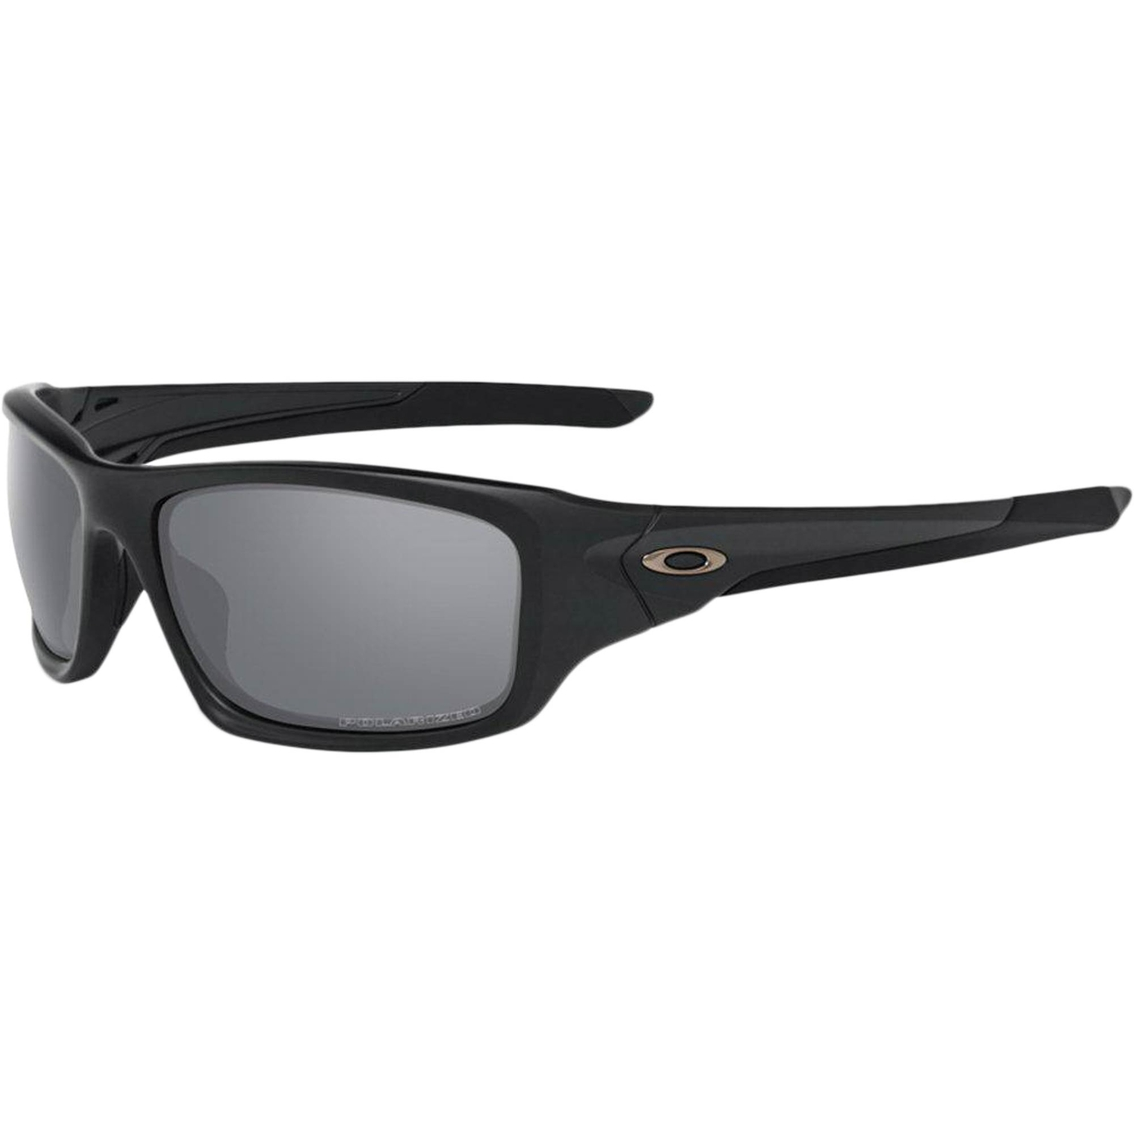 Cheap Oakley Sunglasses For Military